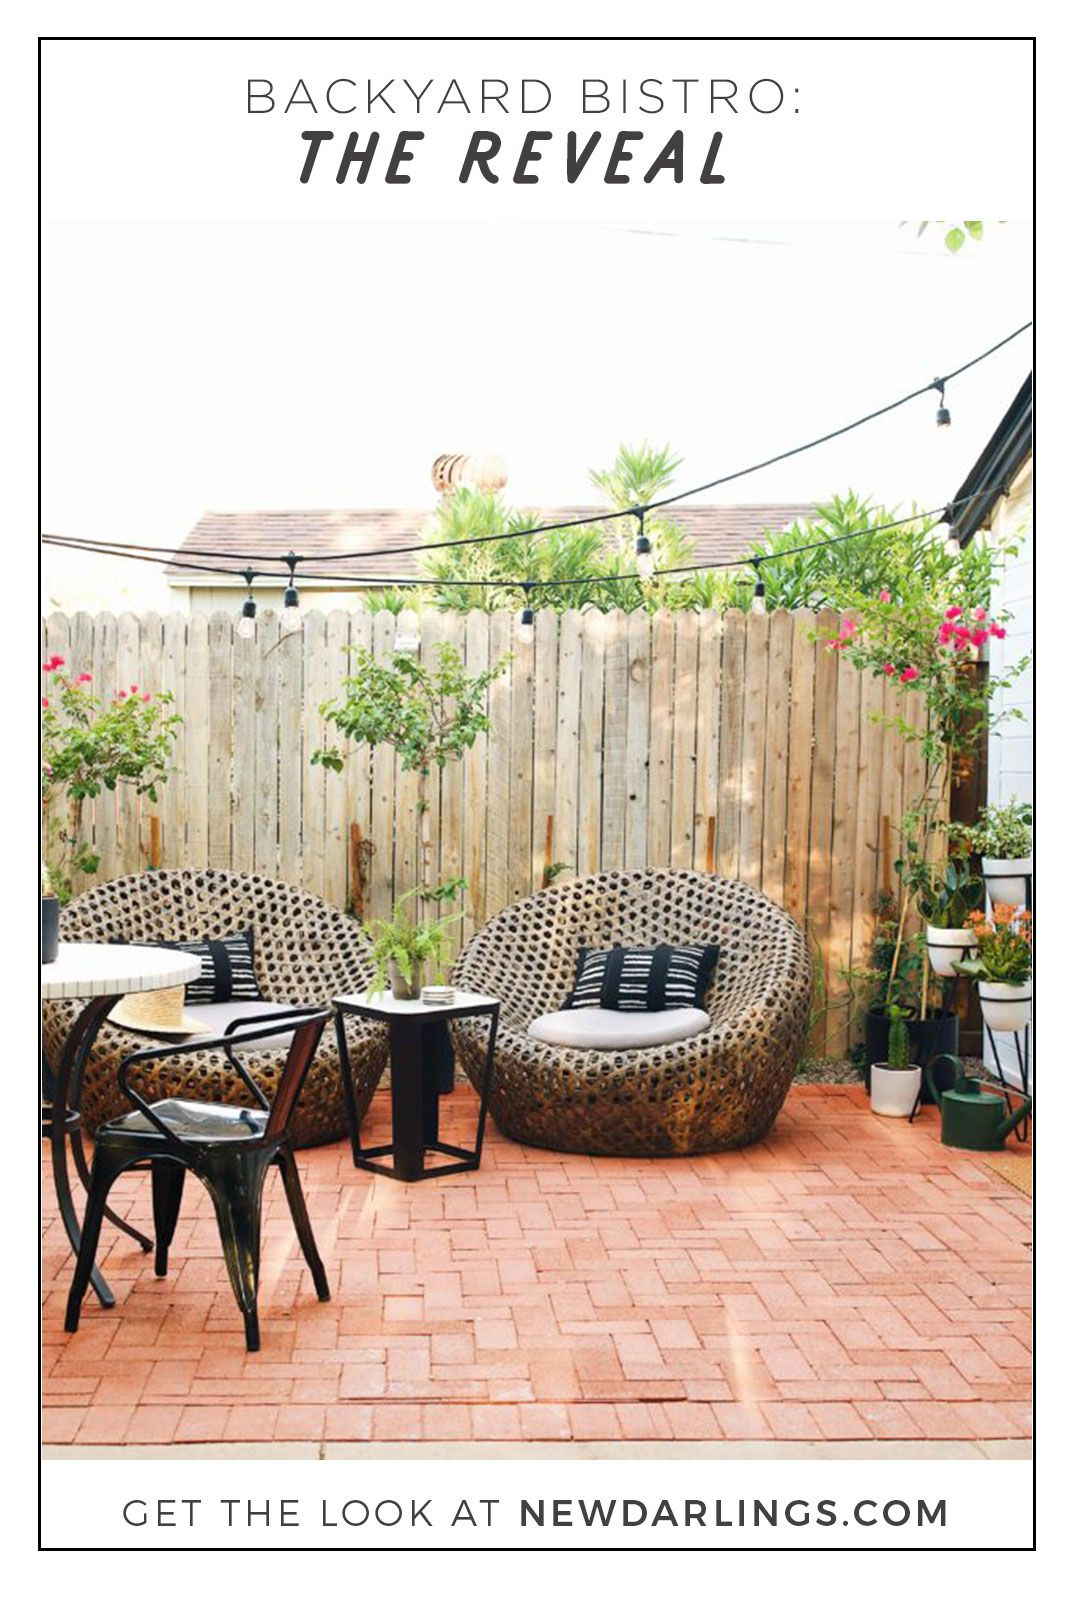 The Backyard Bistro our backyard bistro area: the reveal in 2018 | new darlings